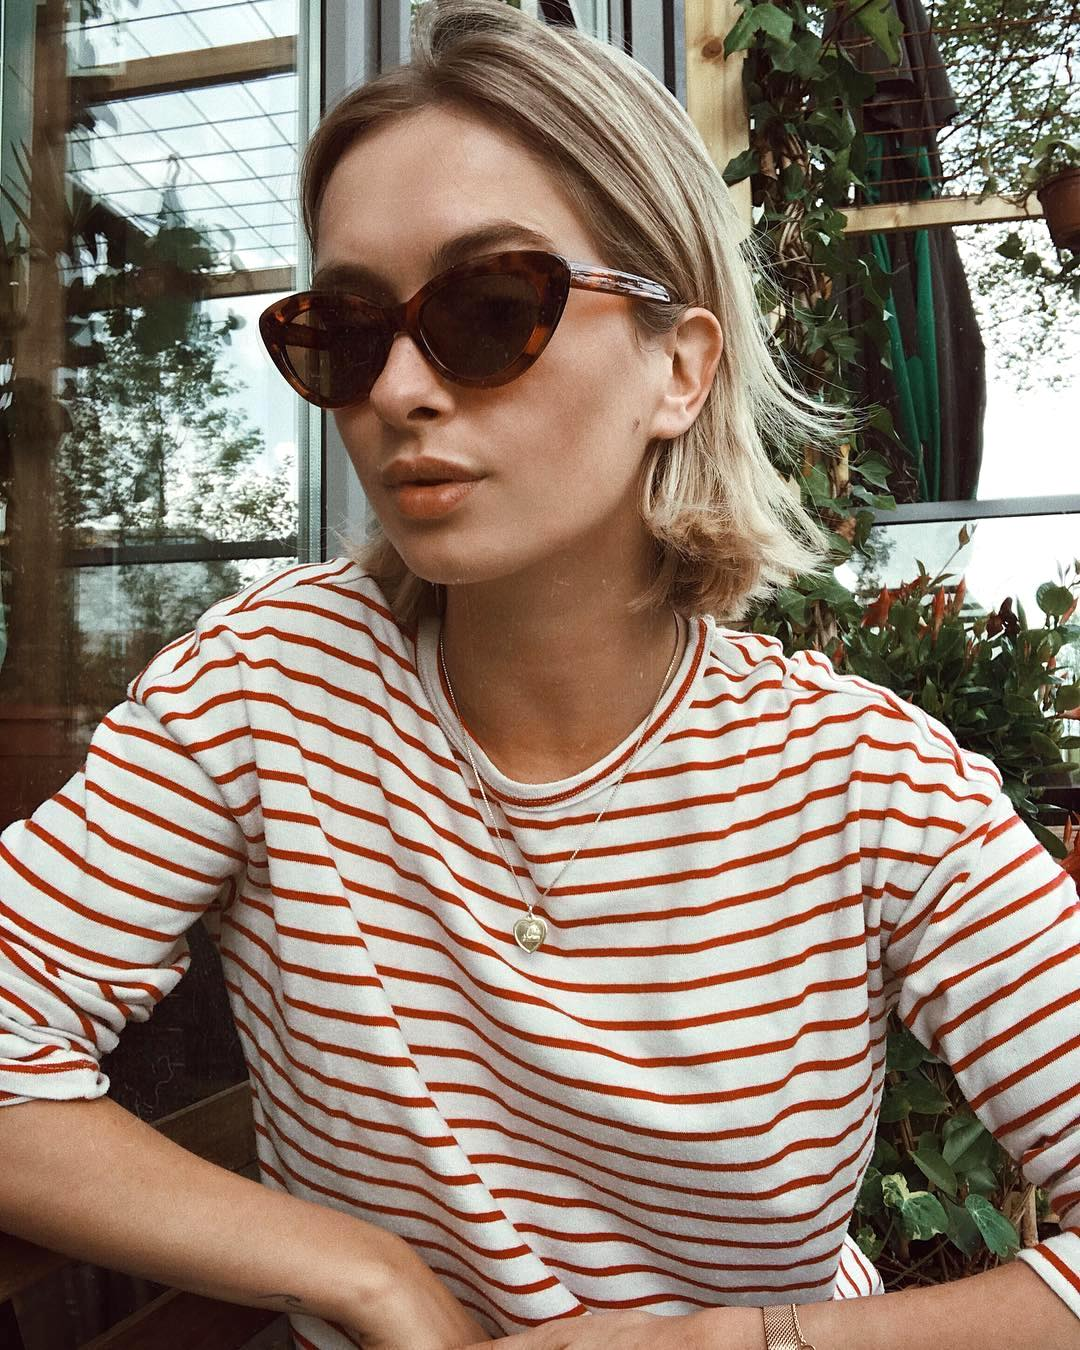 25 Cool Striped Long-Sleeve T-Shirts to Shop Now — Rianne Meijer In Cat-Eye Sunglasses and a Red Striped Tee